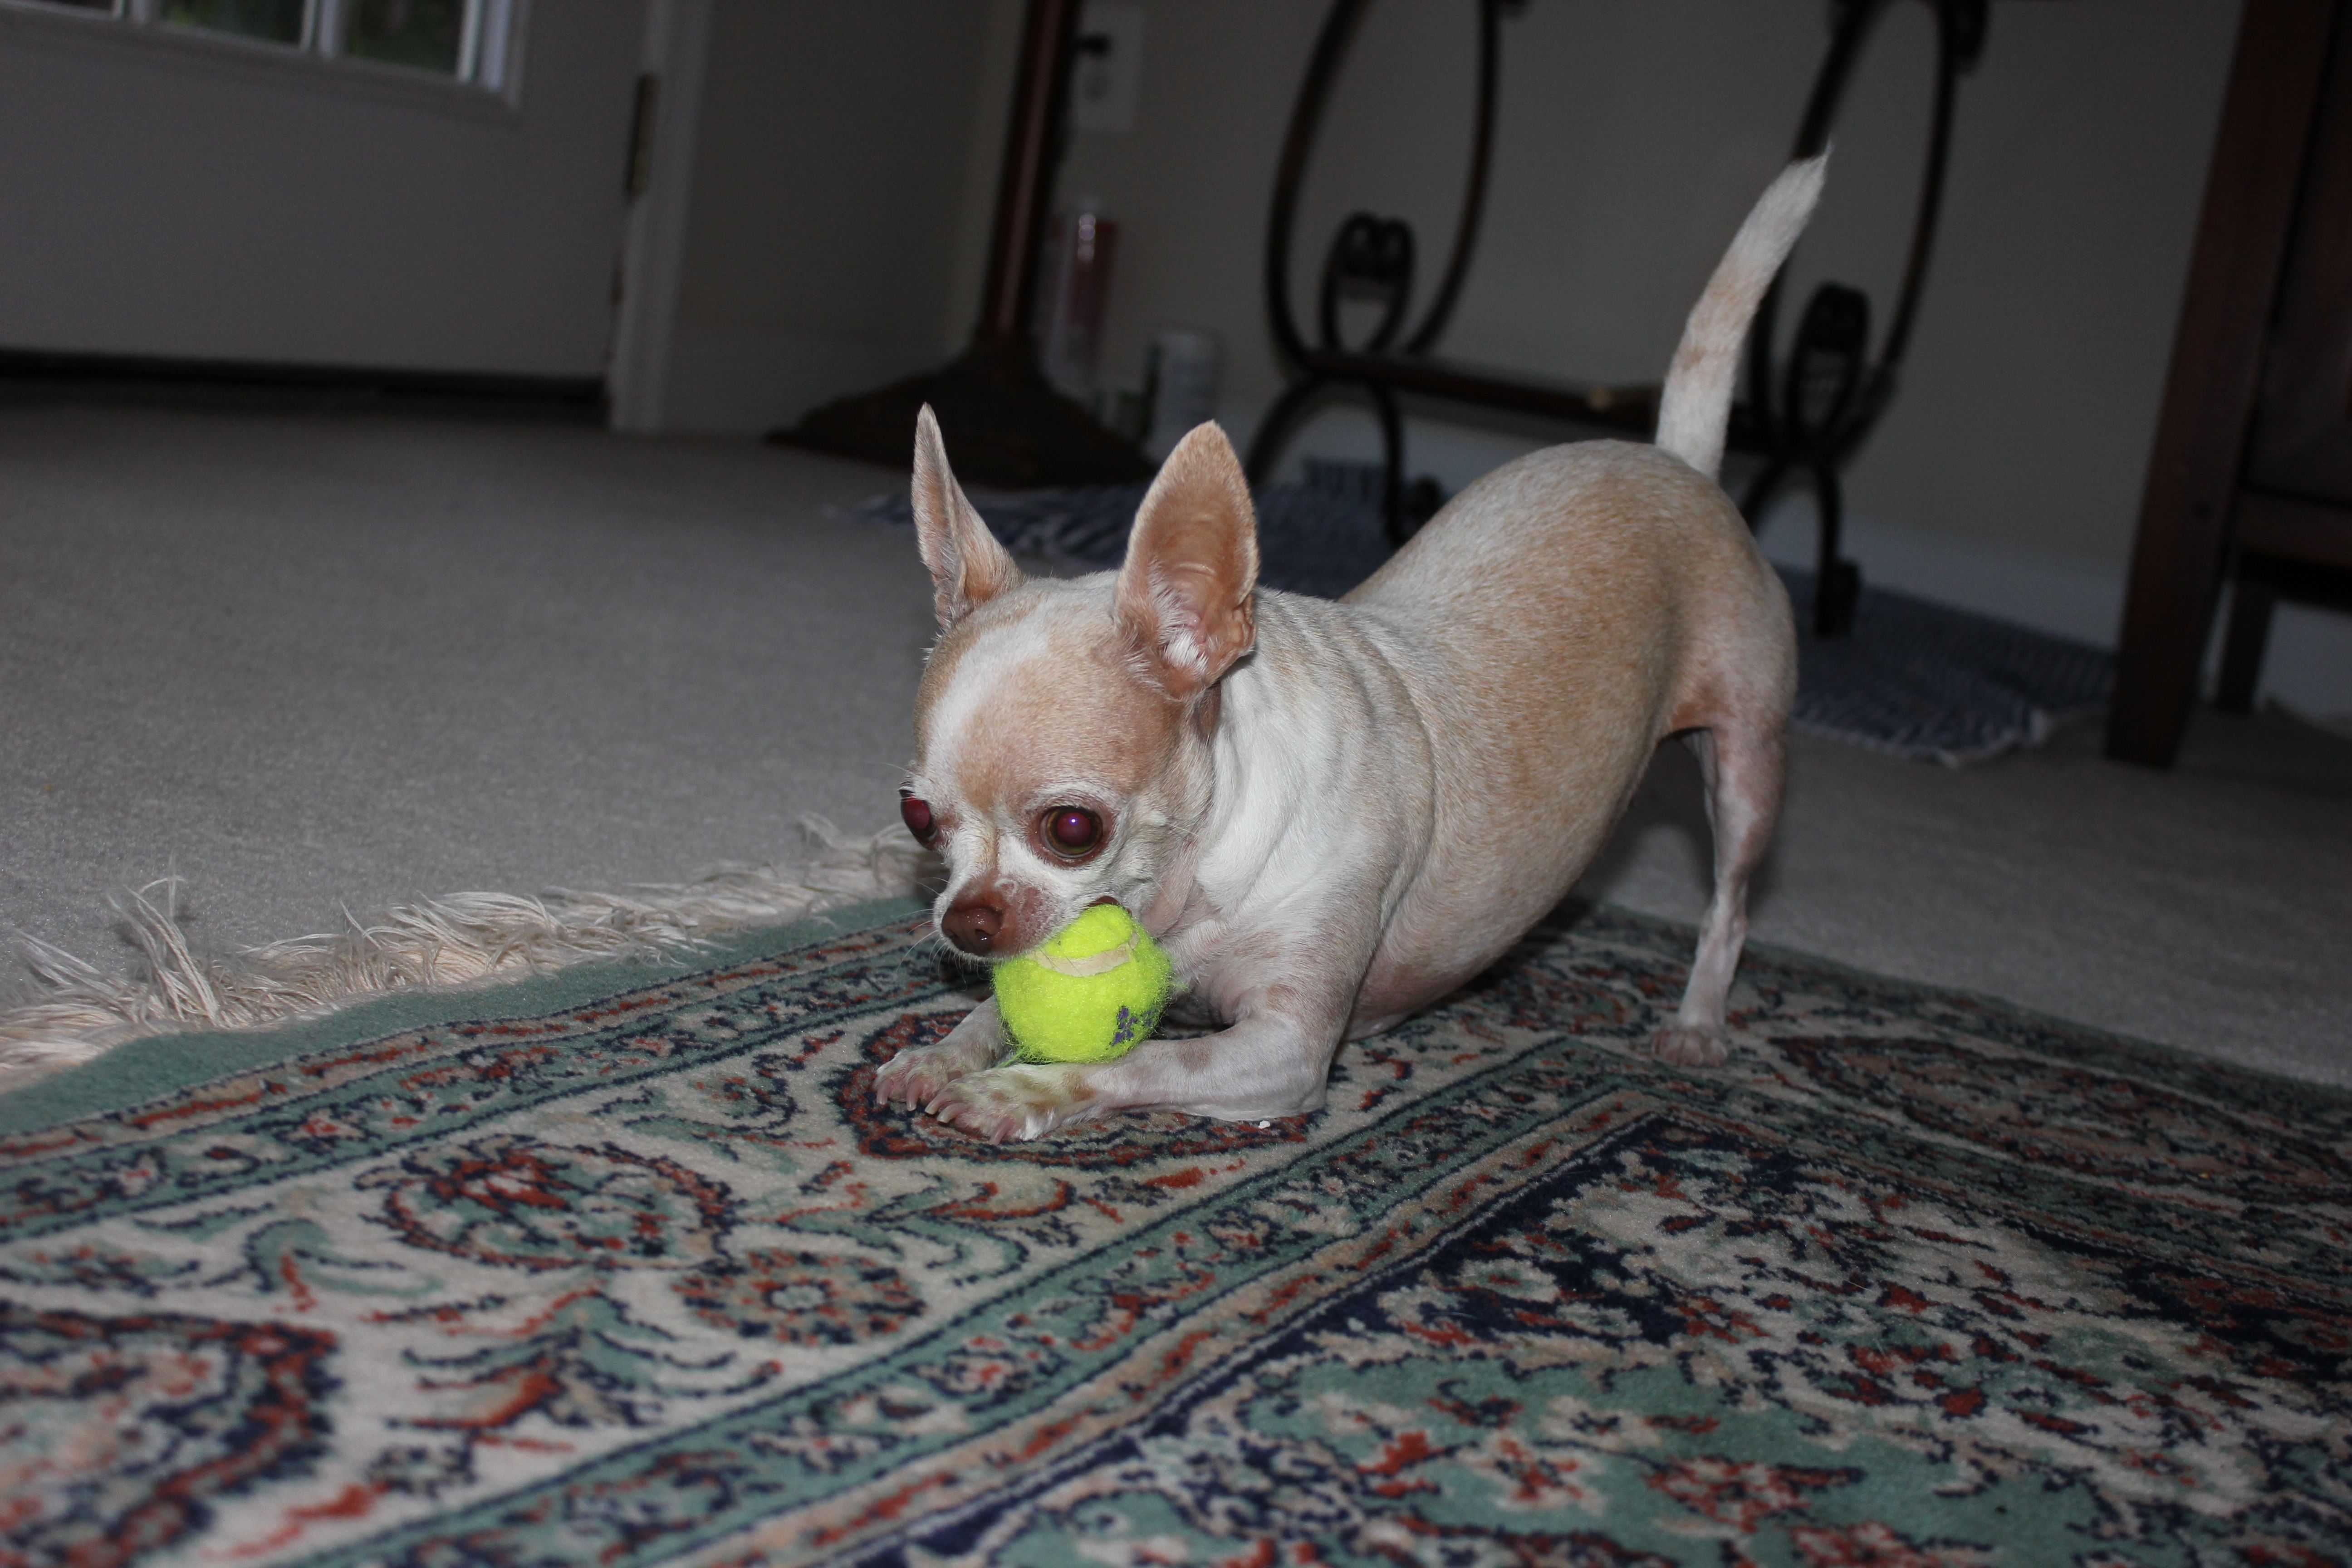 Pin by Jacqueline Llewellyn on Chihuahua   Pinterest   Animal